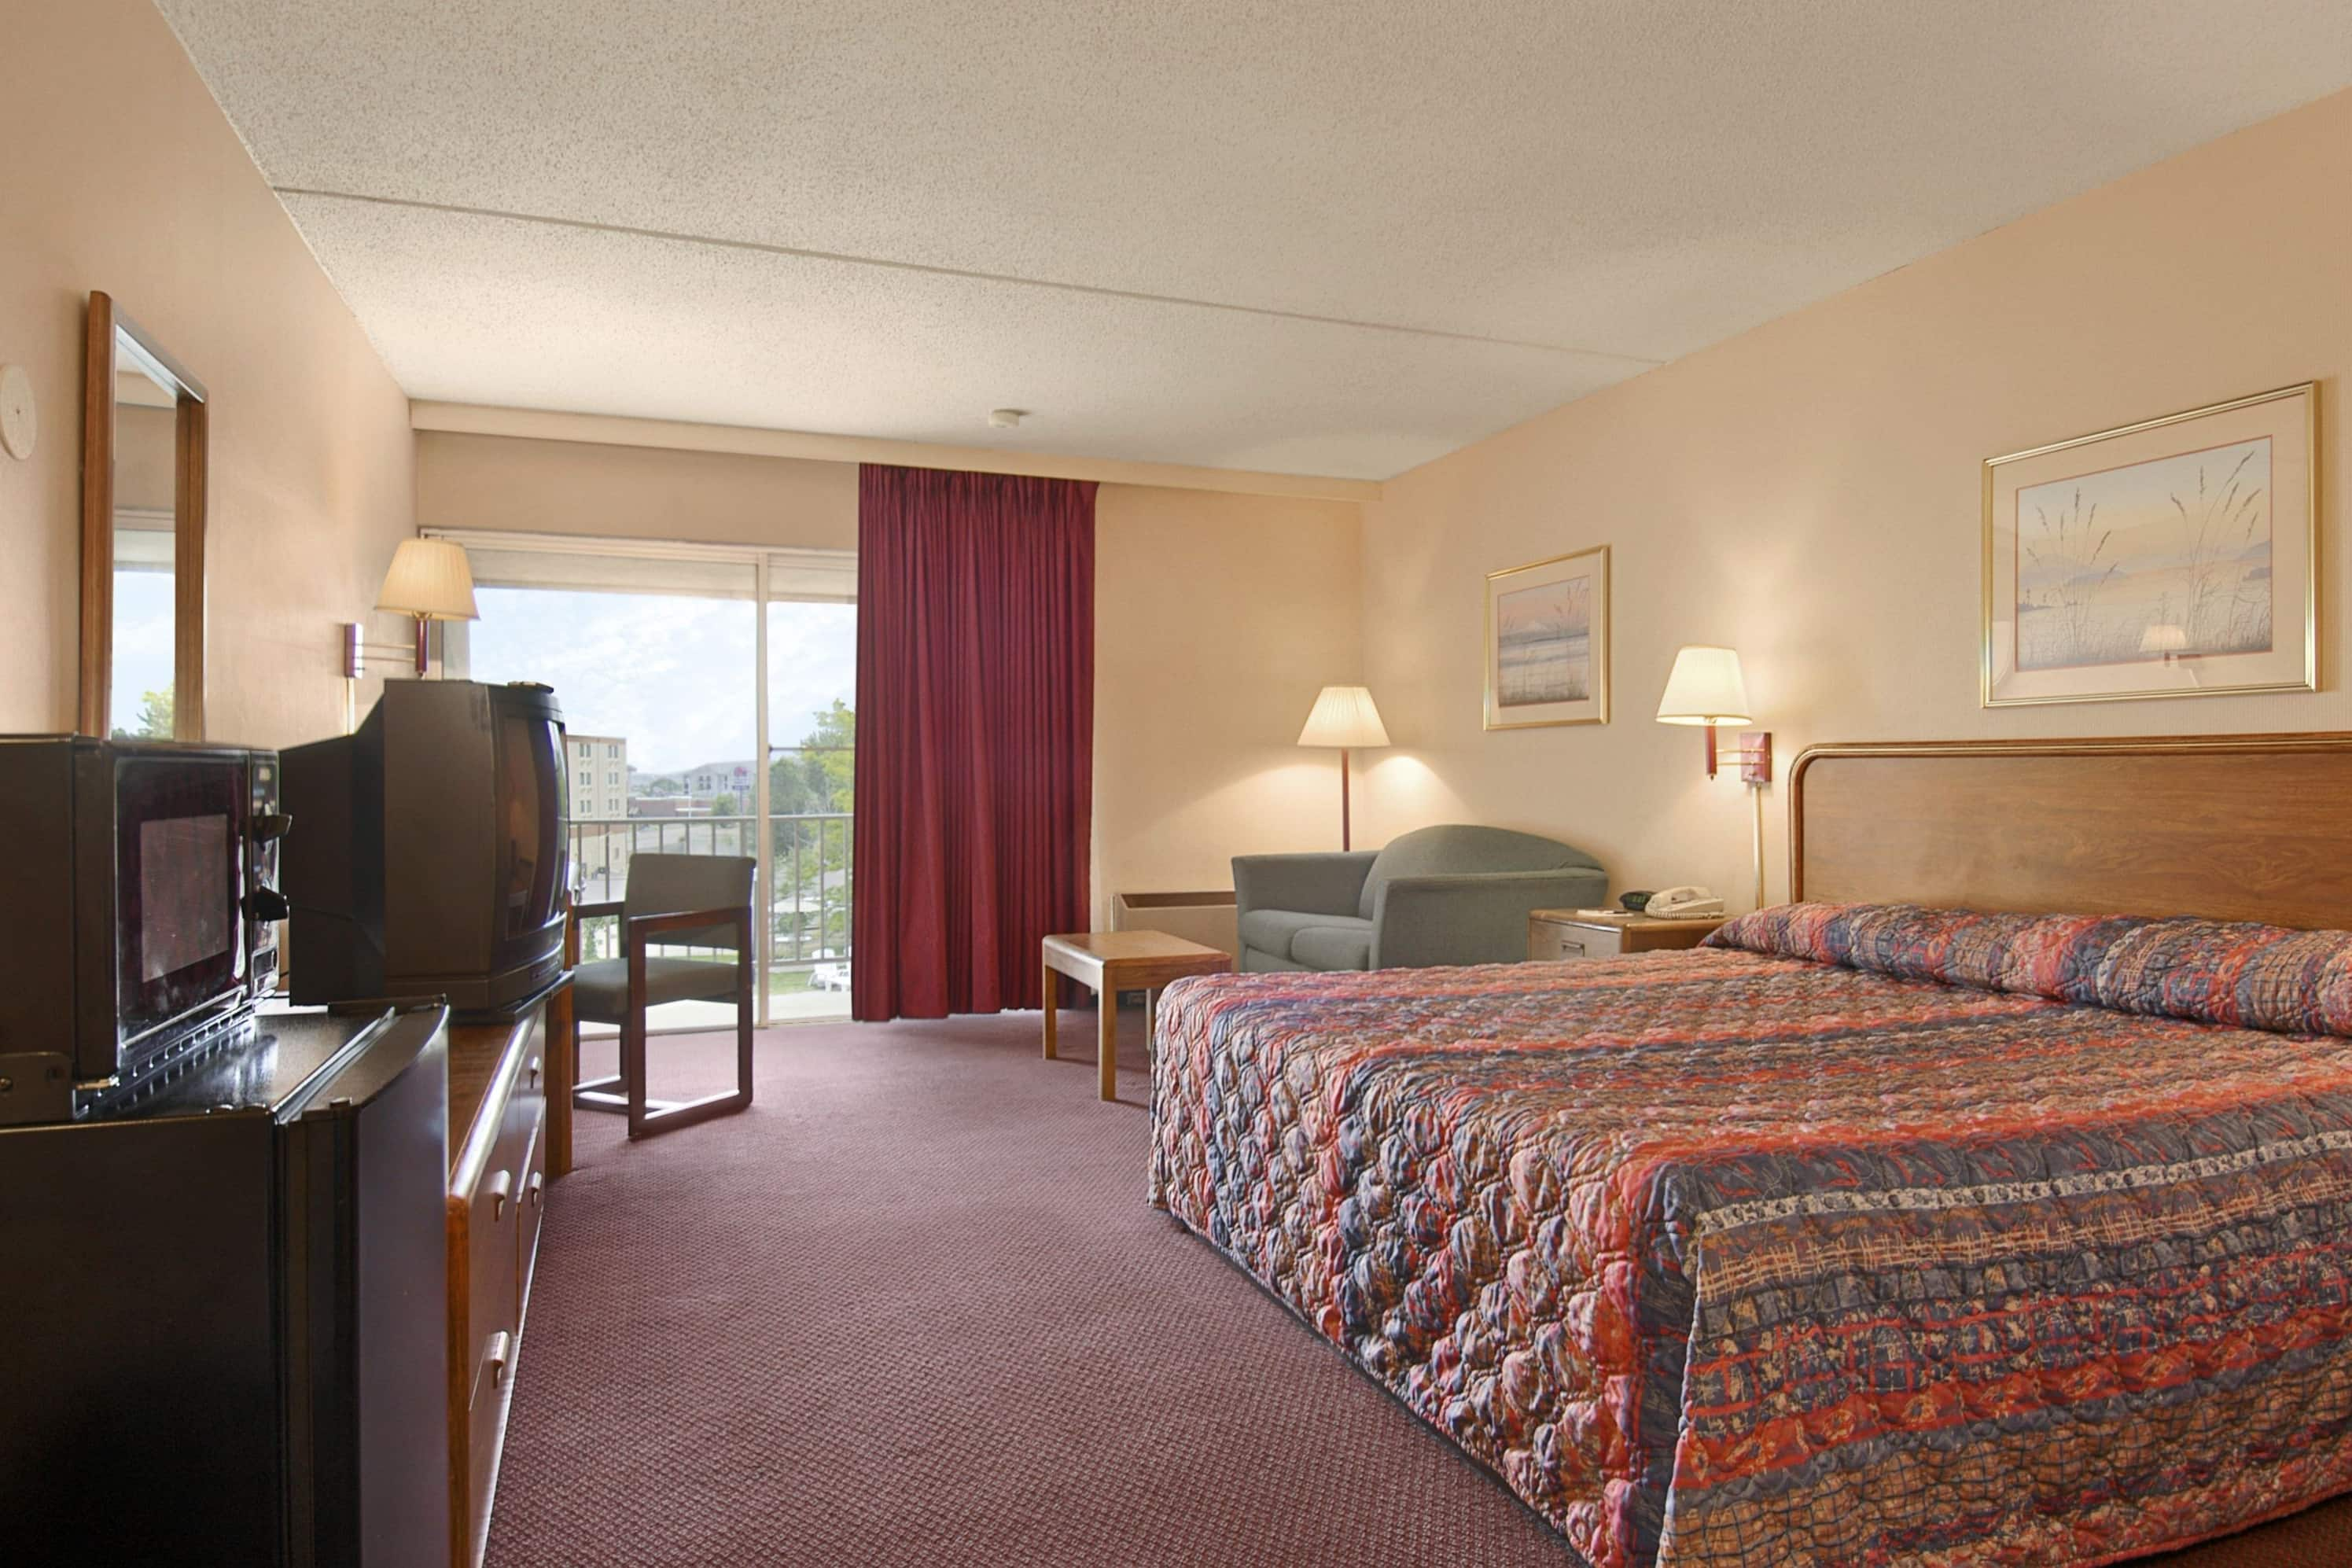 Days Inn Colorado Springs/Garden of the Gods suite in Colorado Springs, Colorado